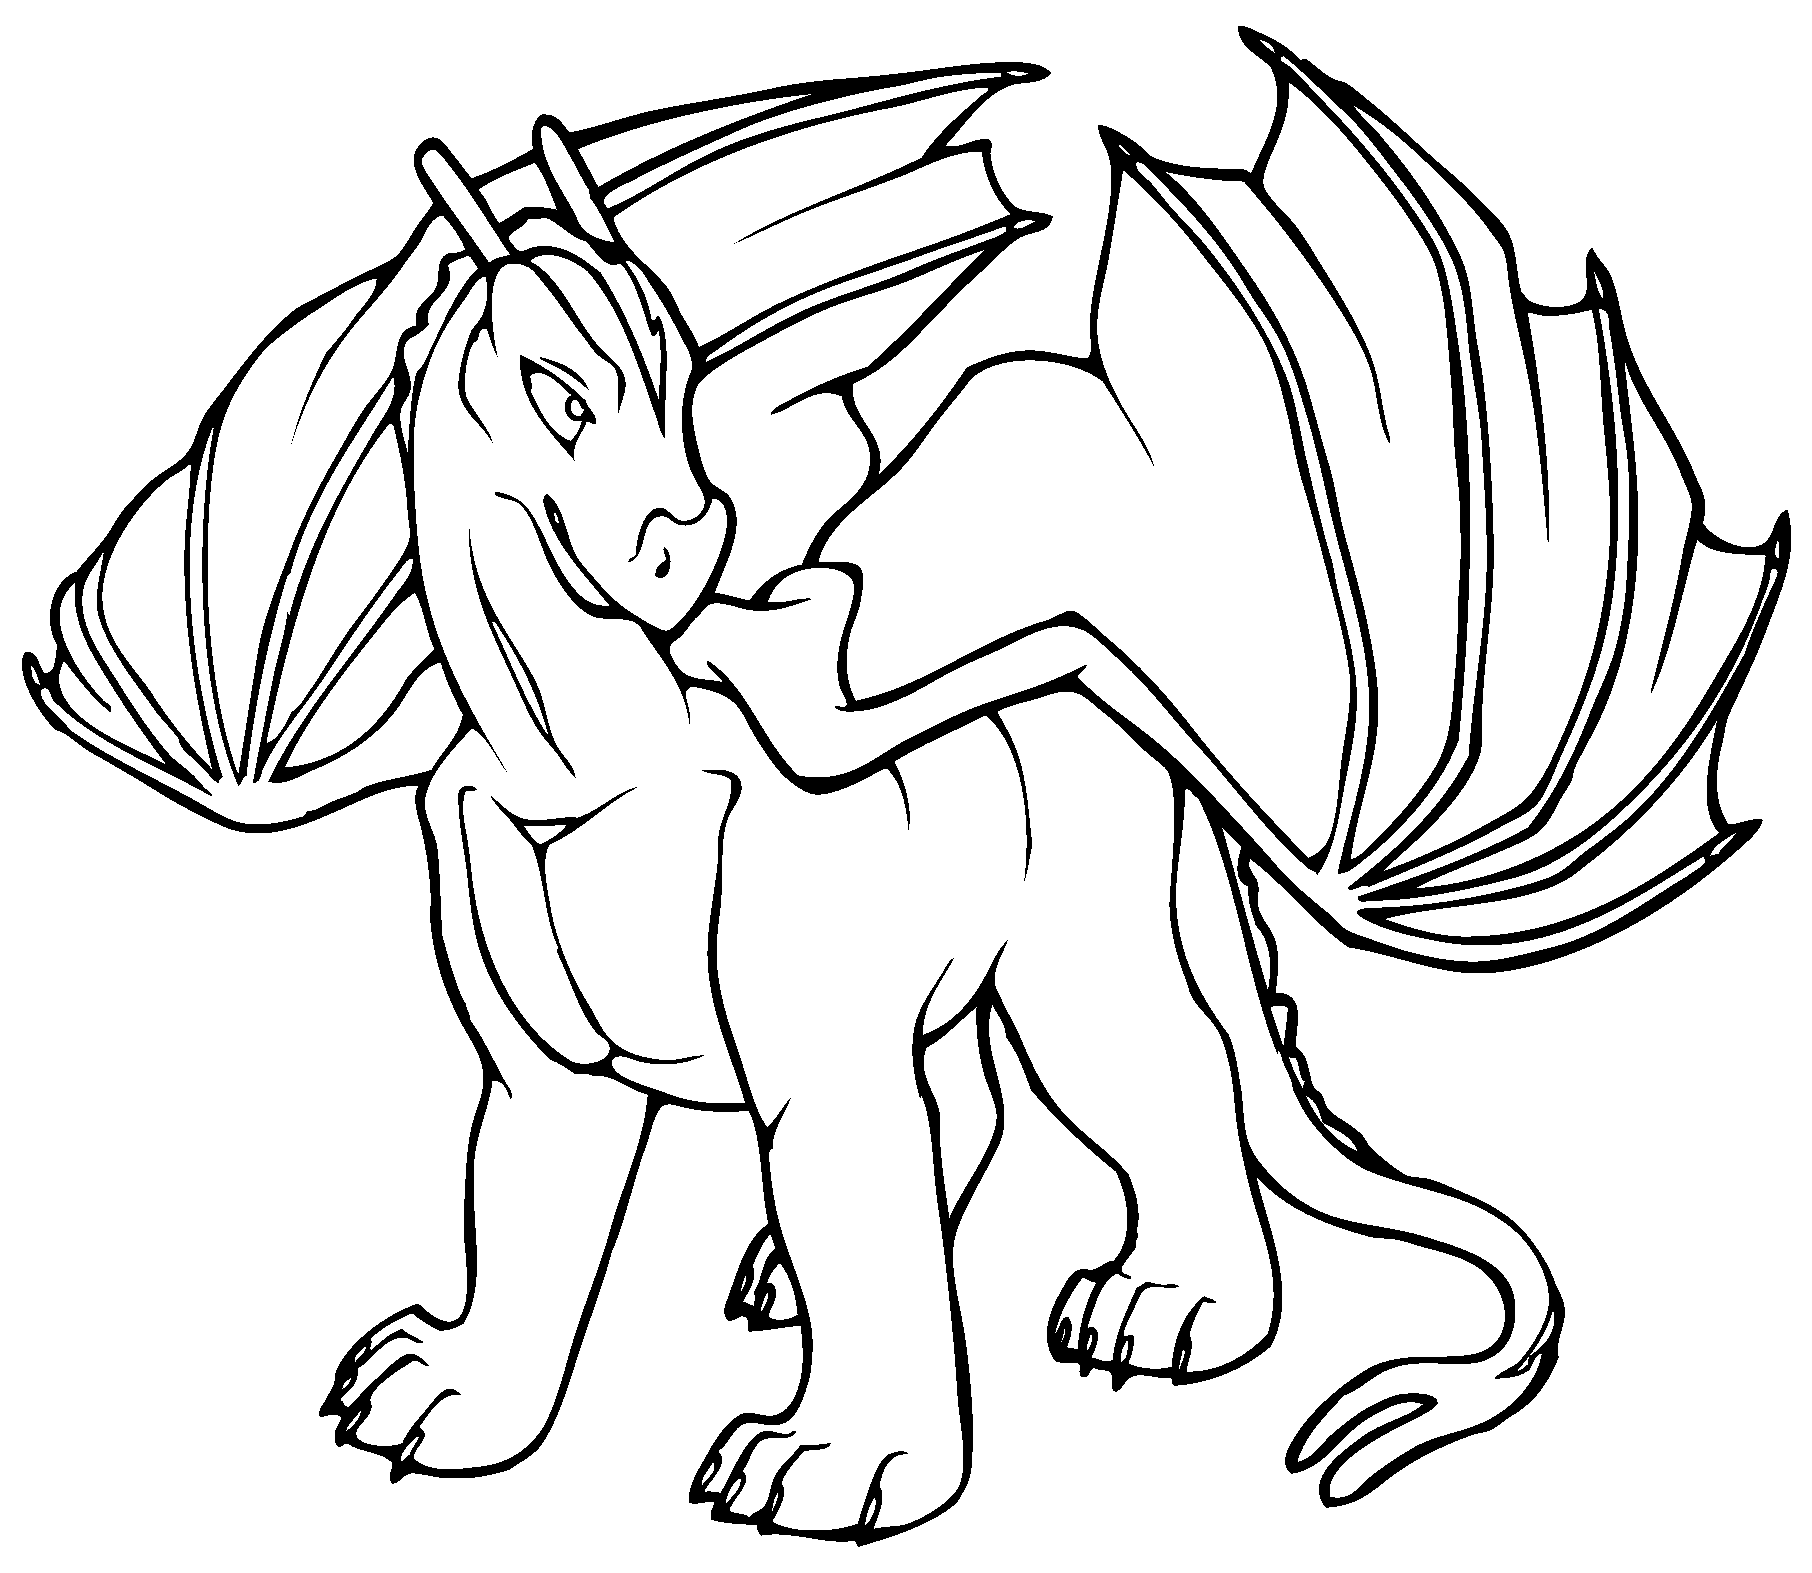 real dragon coloring pages - detailed dragon coloring pages coloring home